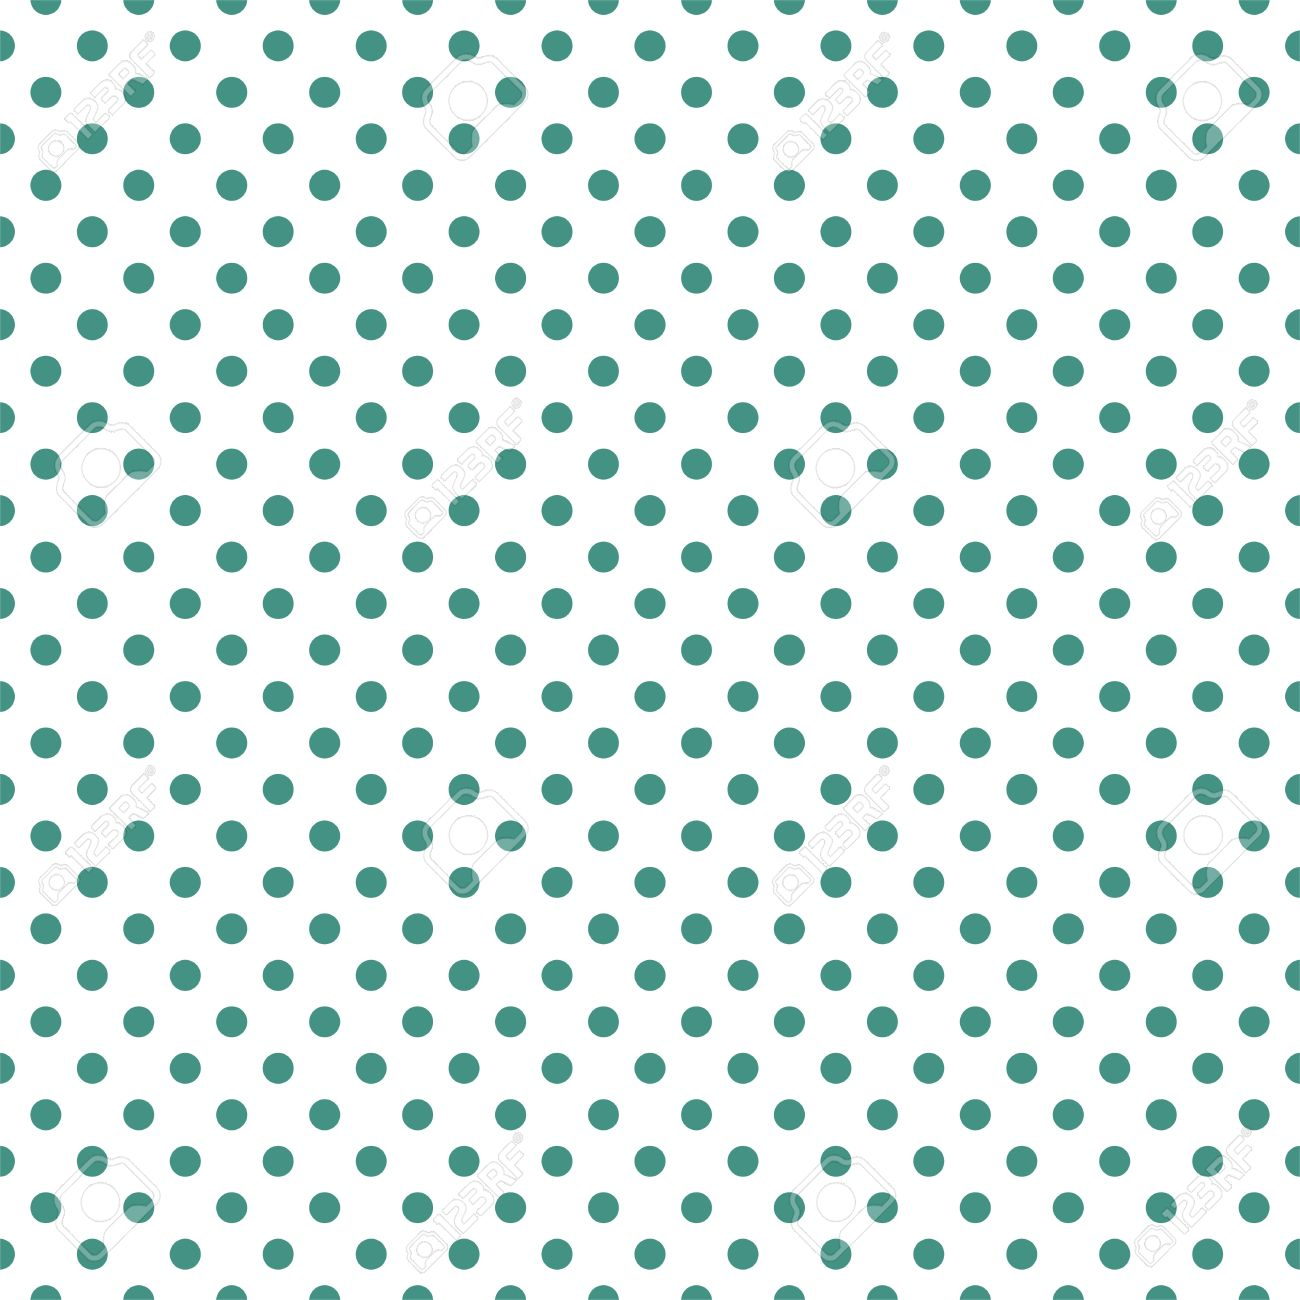 Seamless Vector Pattern With Cute Bottle Green Polka Dots On White Background For Web Design